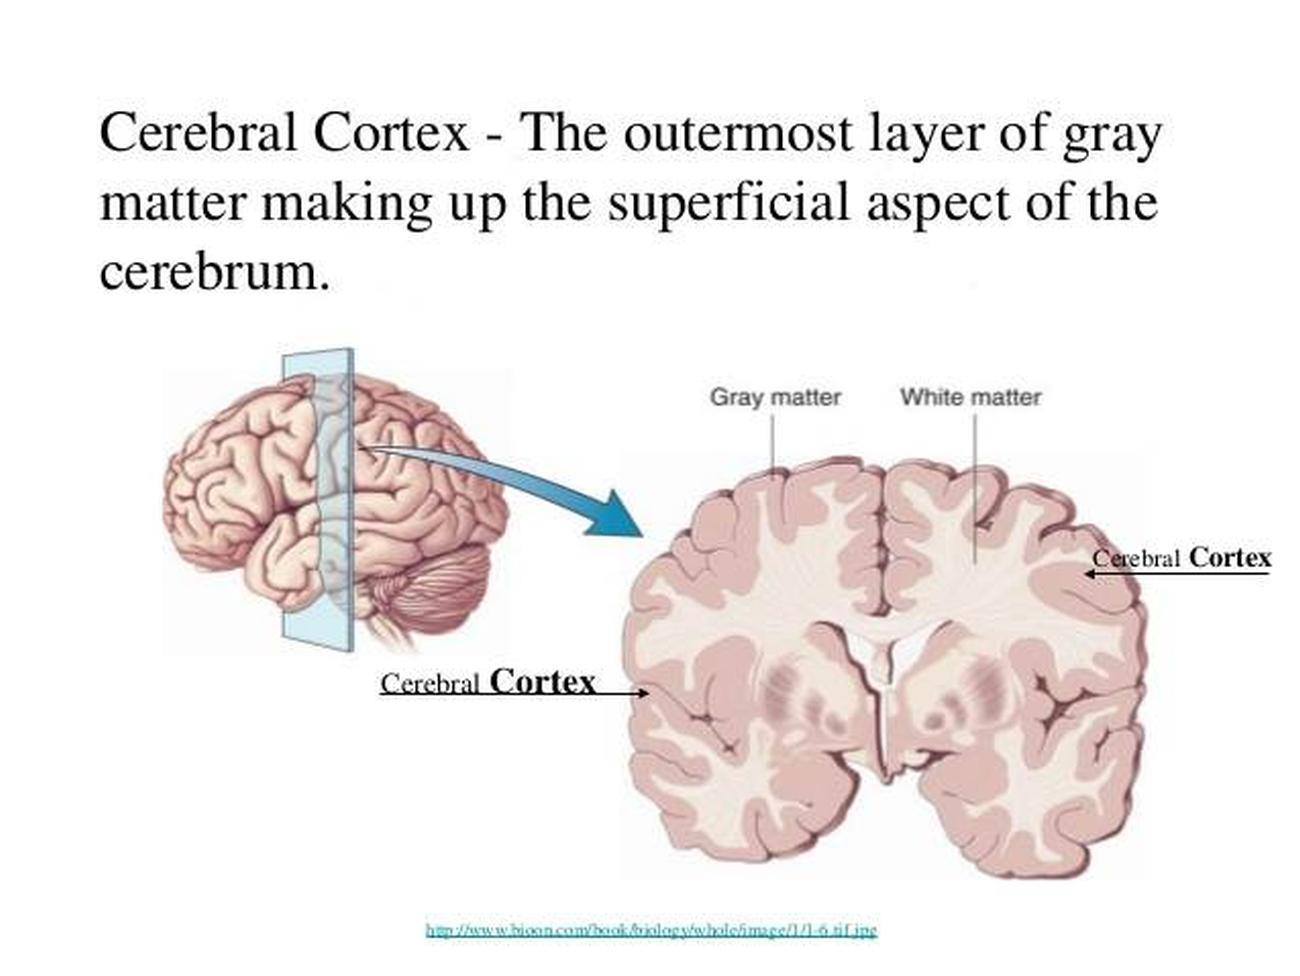 cerebral cortex Cerebral cortex's wiki: the cerebral cortex is the largest region of the mammalian brain and plays a key role in memory, attention, perception, cognition, awareness, thought, language, and consciousness the cerebral cortex is the most anterior (rostral) brain region and consist.